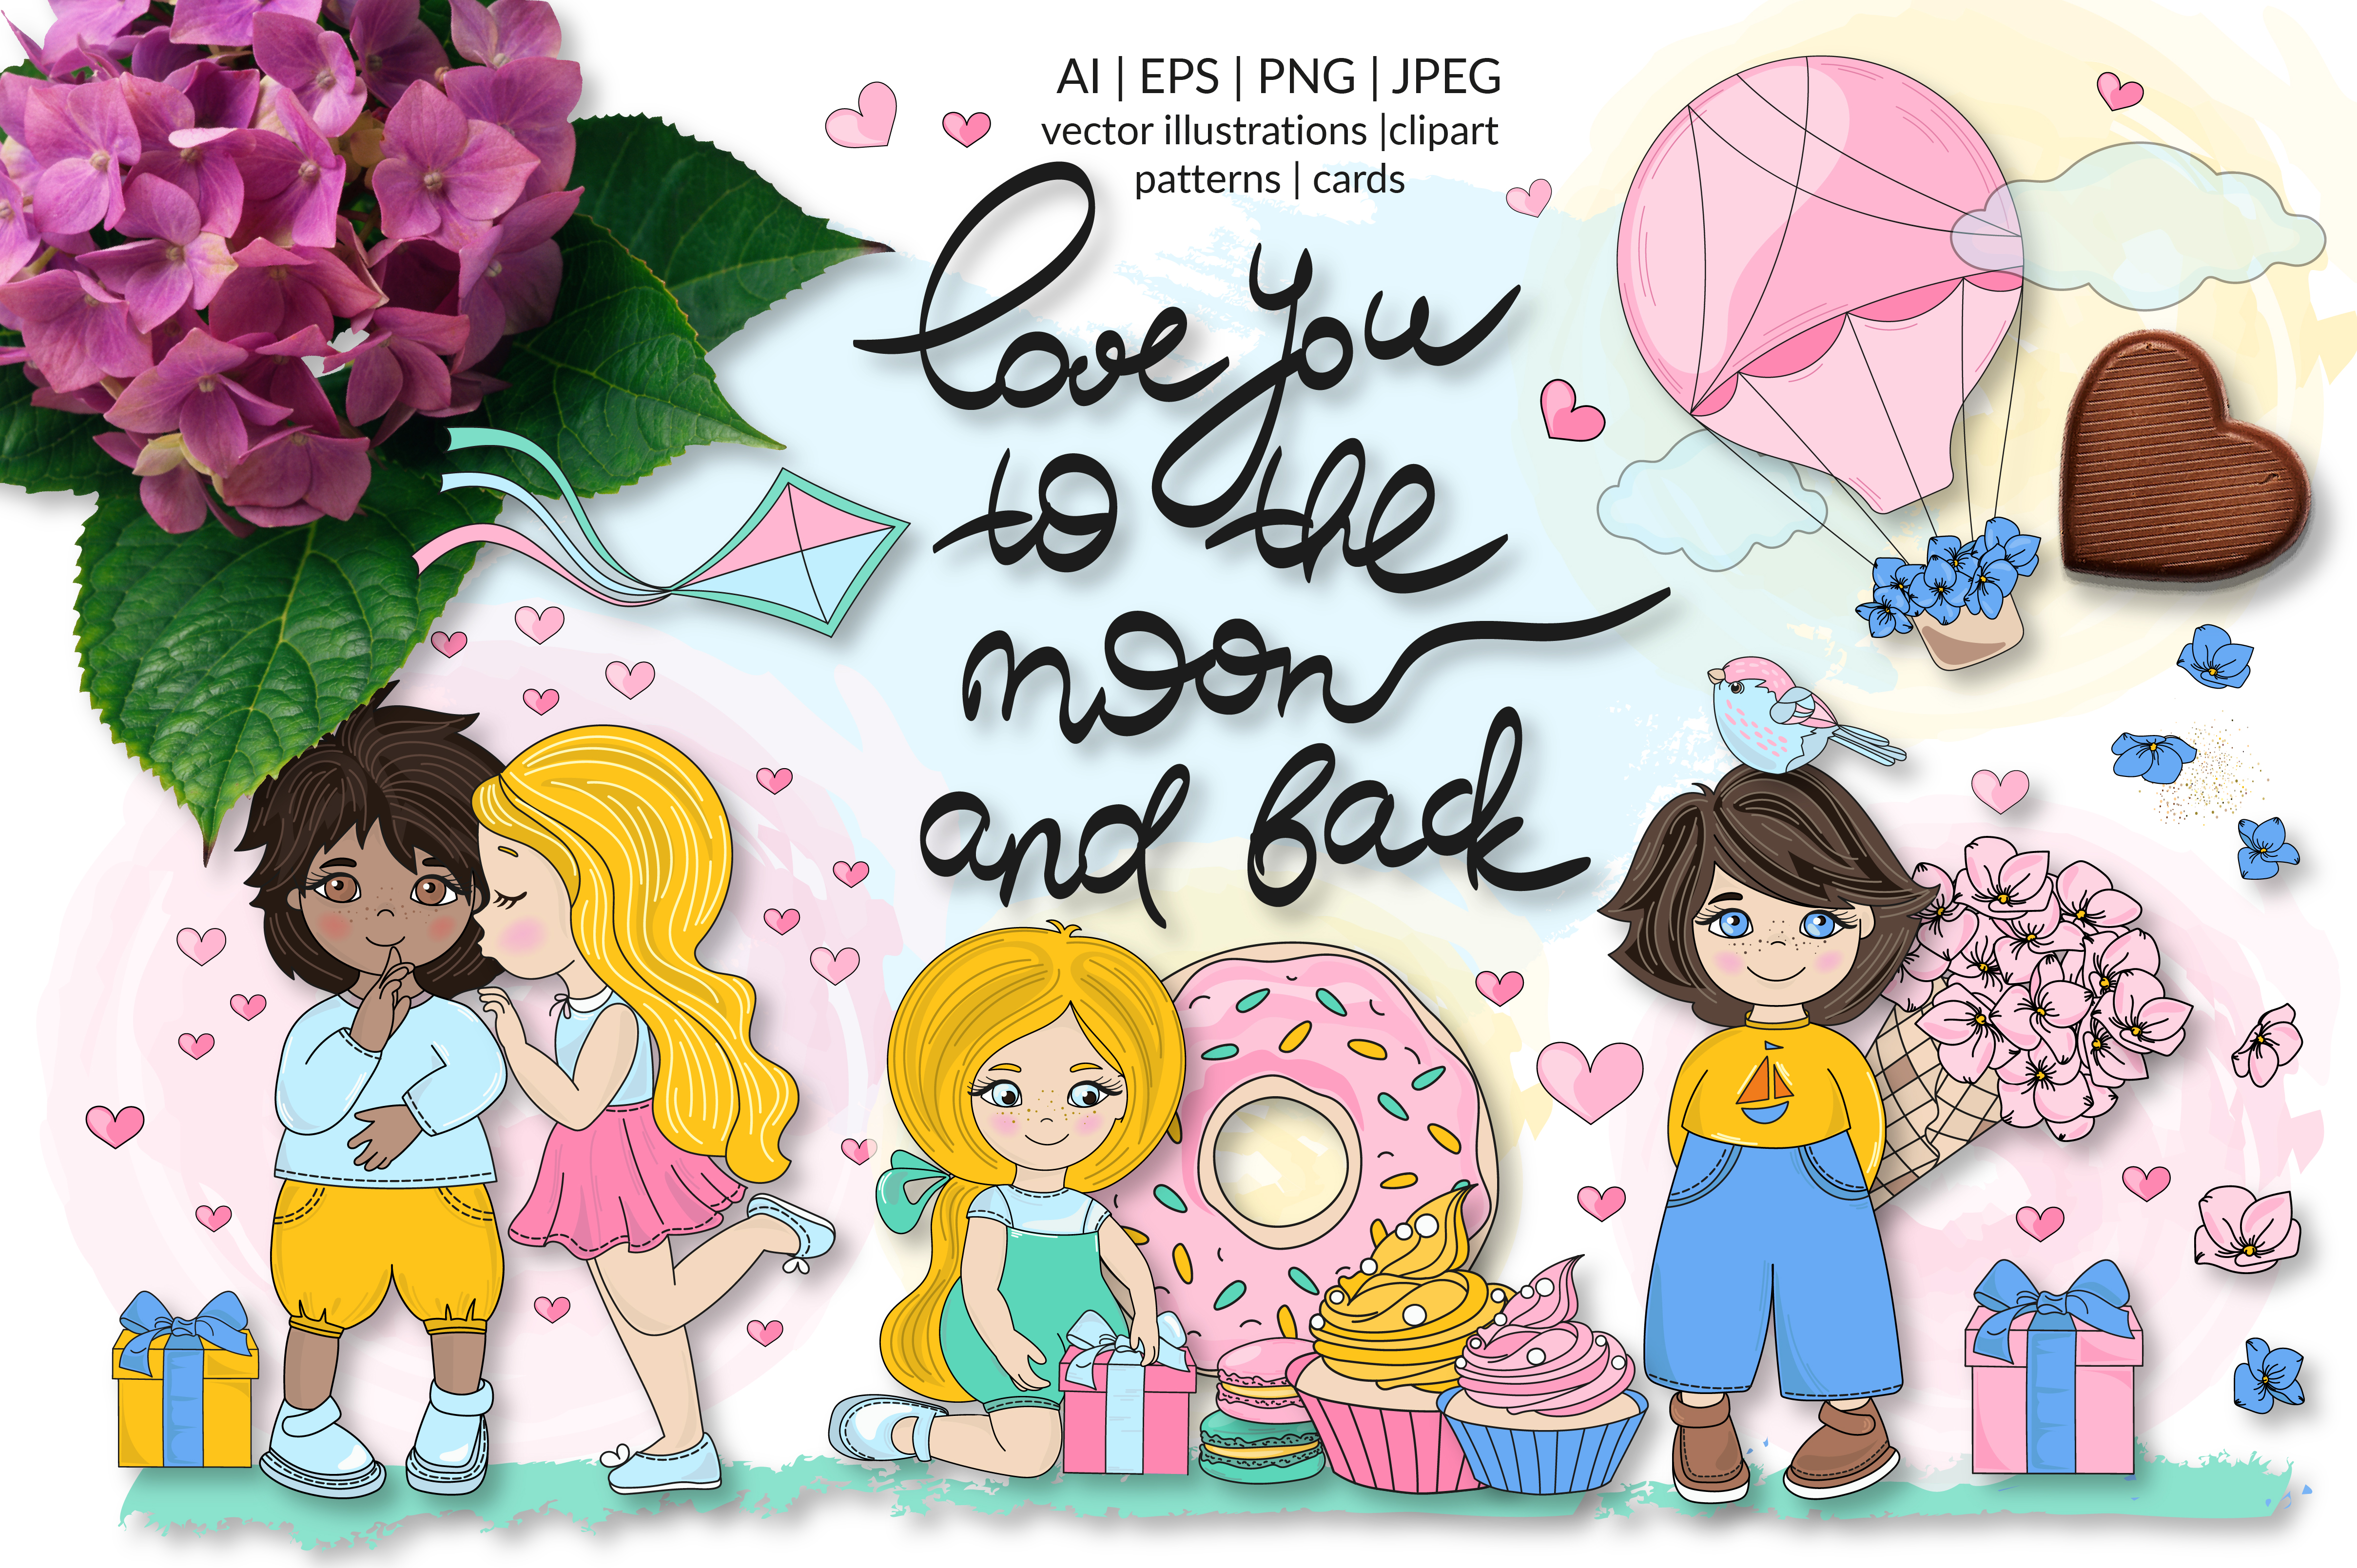 Download Free Cute Valentine Illustration Set Graphic By Farawaykingdom for Cricut Explore, Silhouette and other cutting machines.